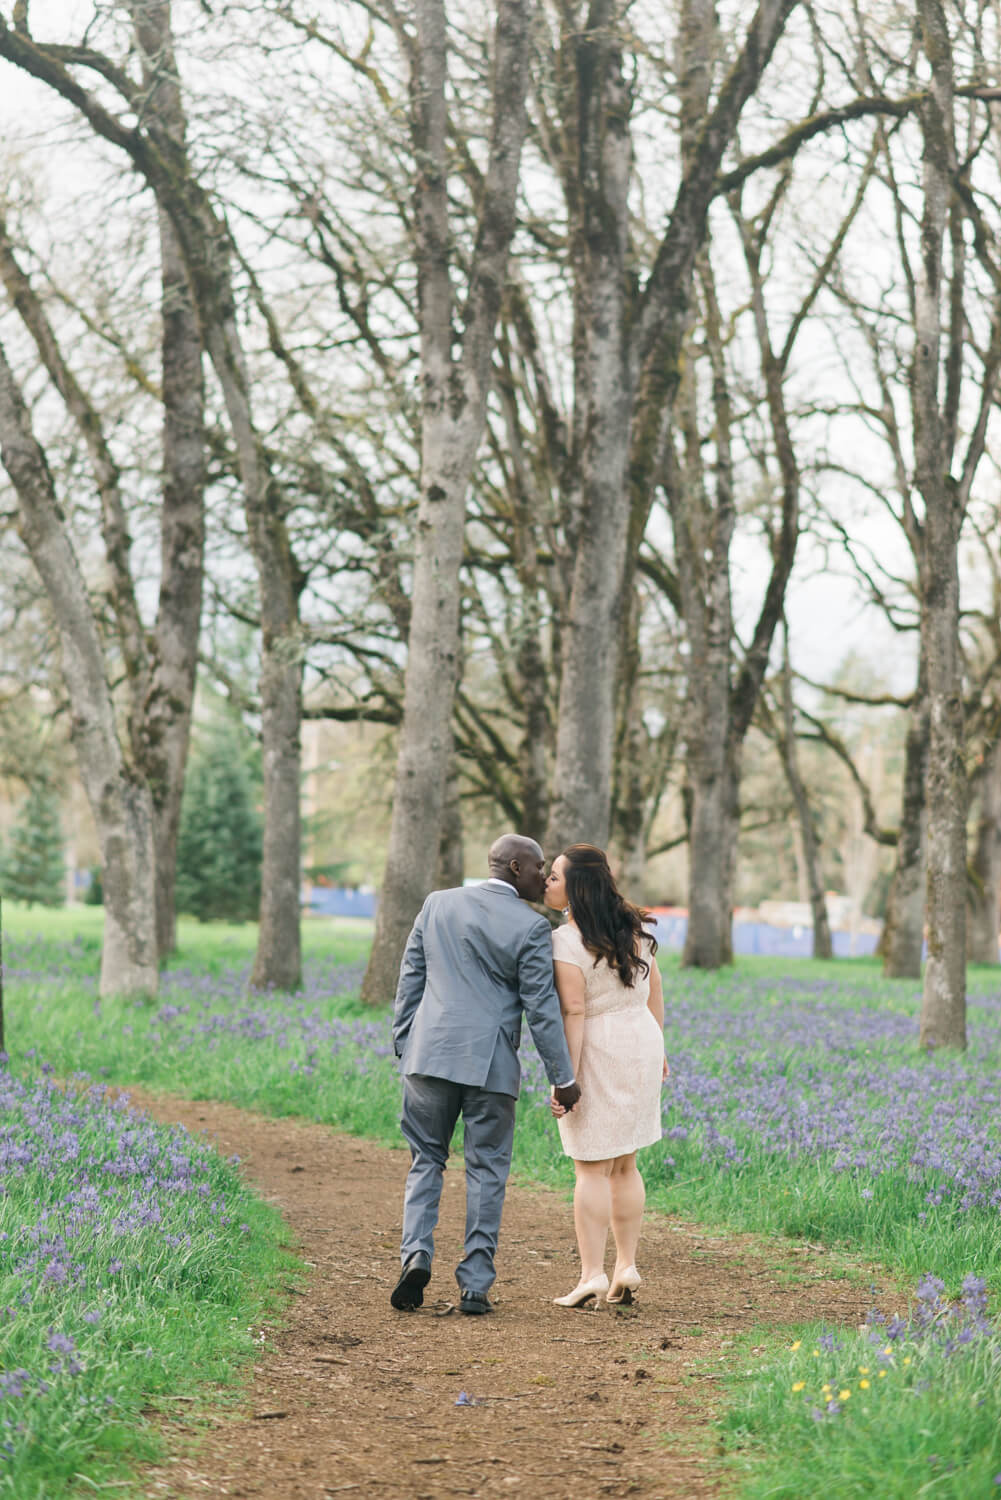 salem-engagement-photography-bushs-pasture-park-shelley-marie-photo-0203.jpg